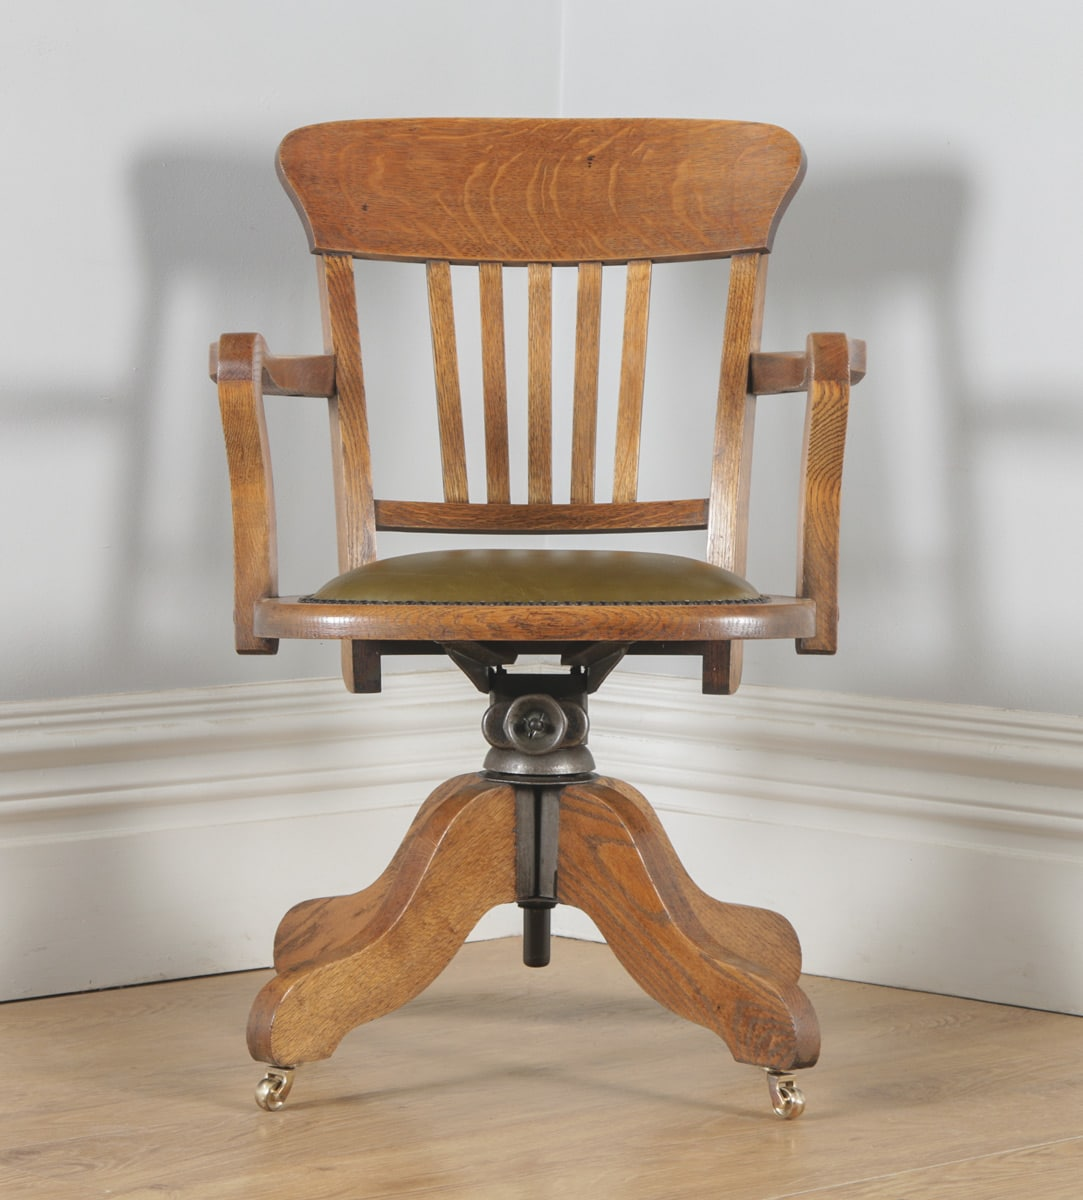 revolving chair in english folding victoria bc antique edwardian oak and leather office